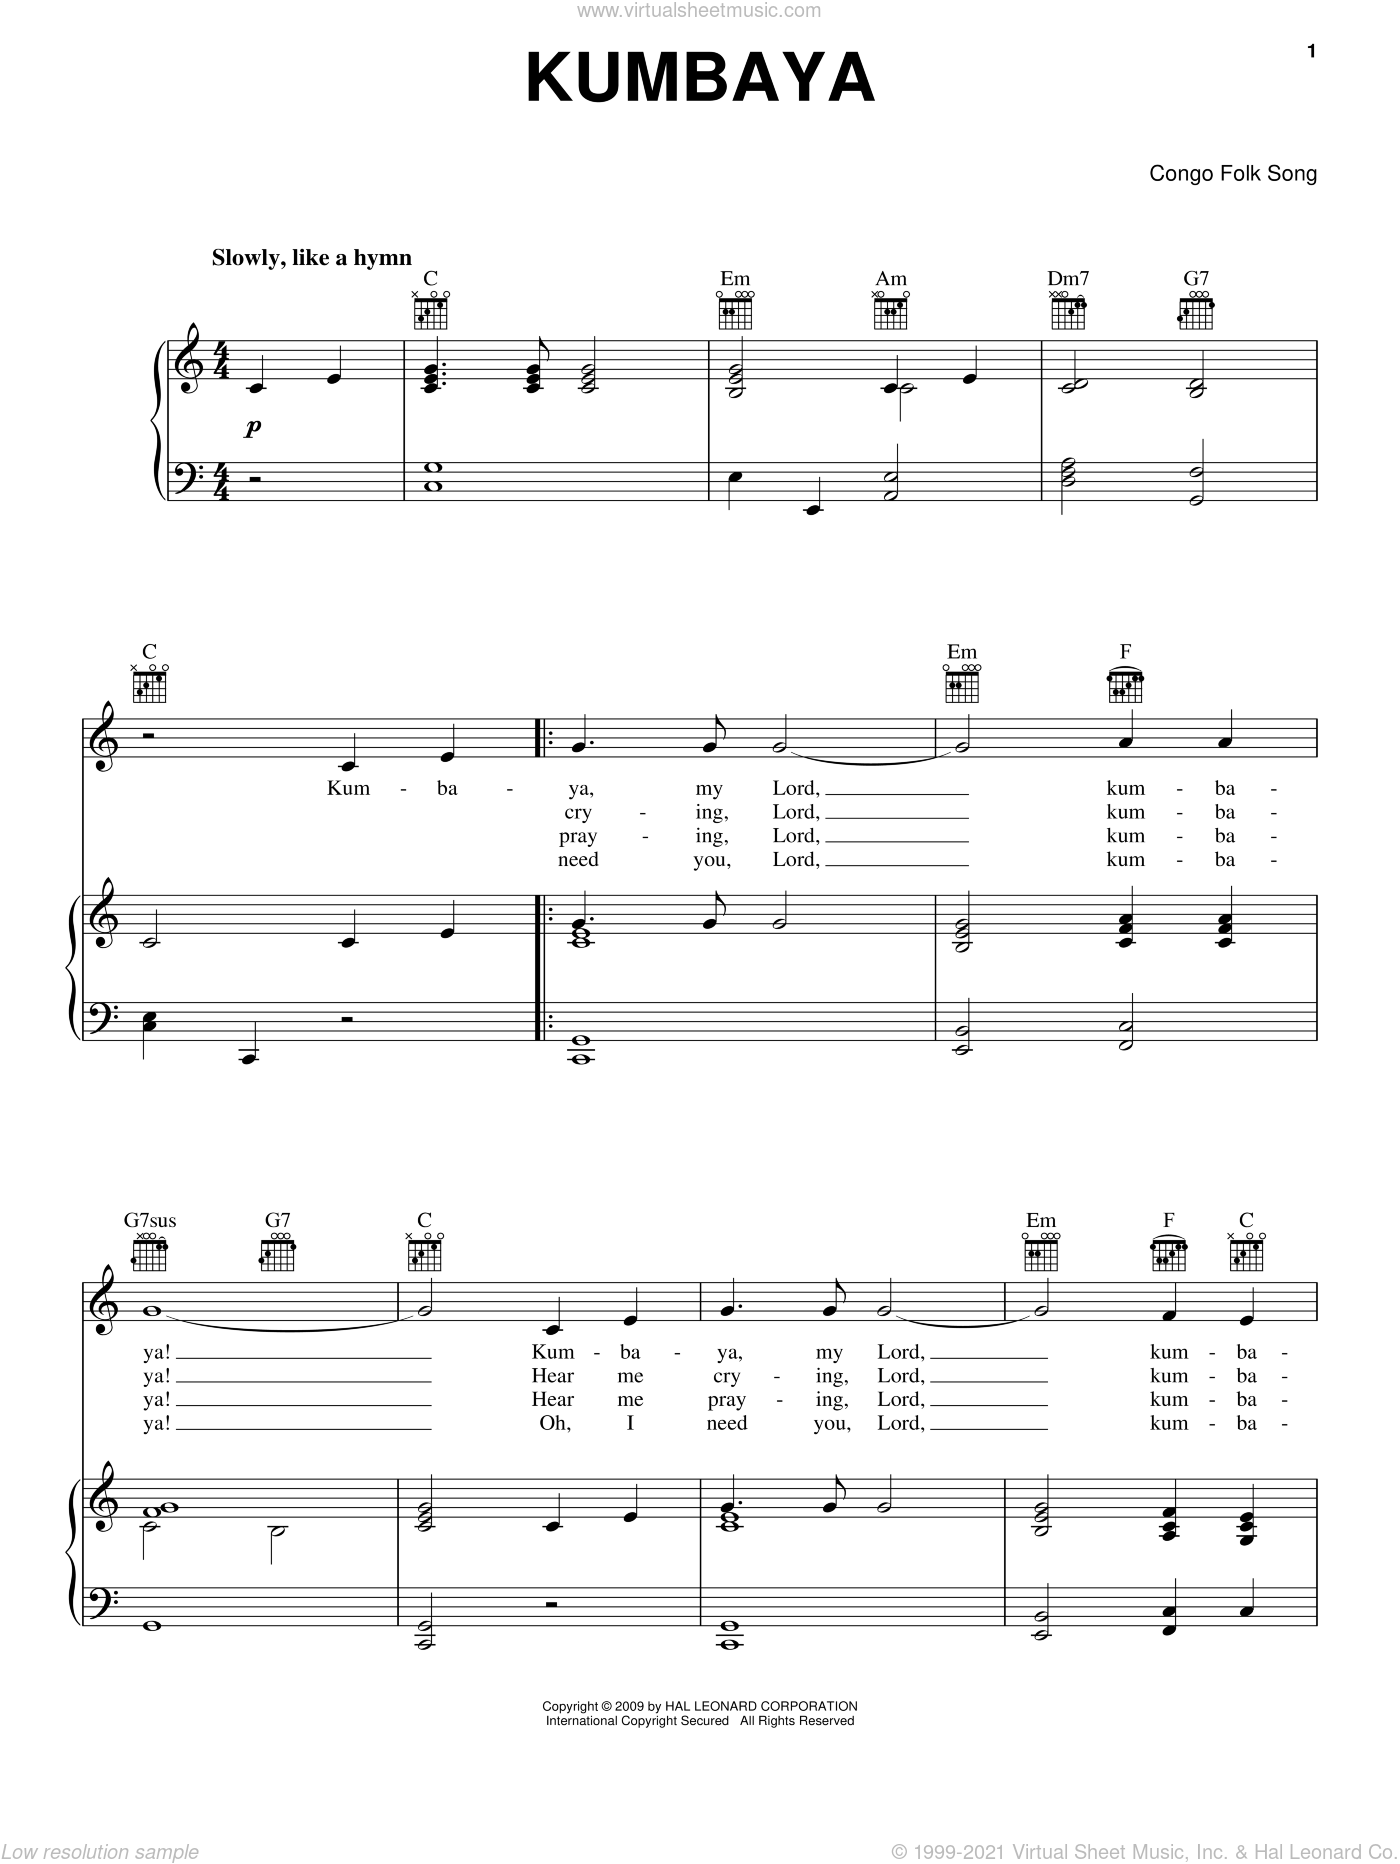 Kumbaya sheet music for voice, piano or guitar